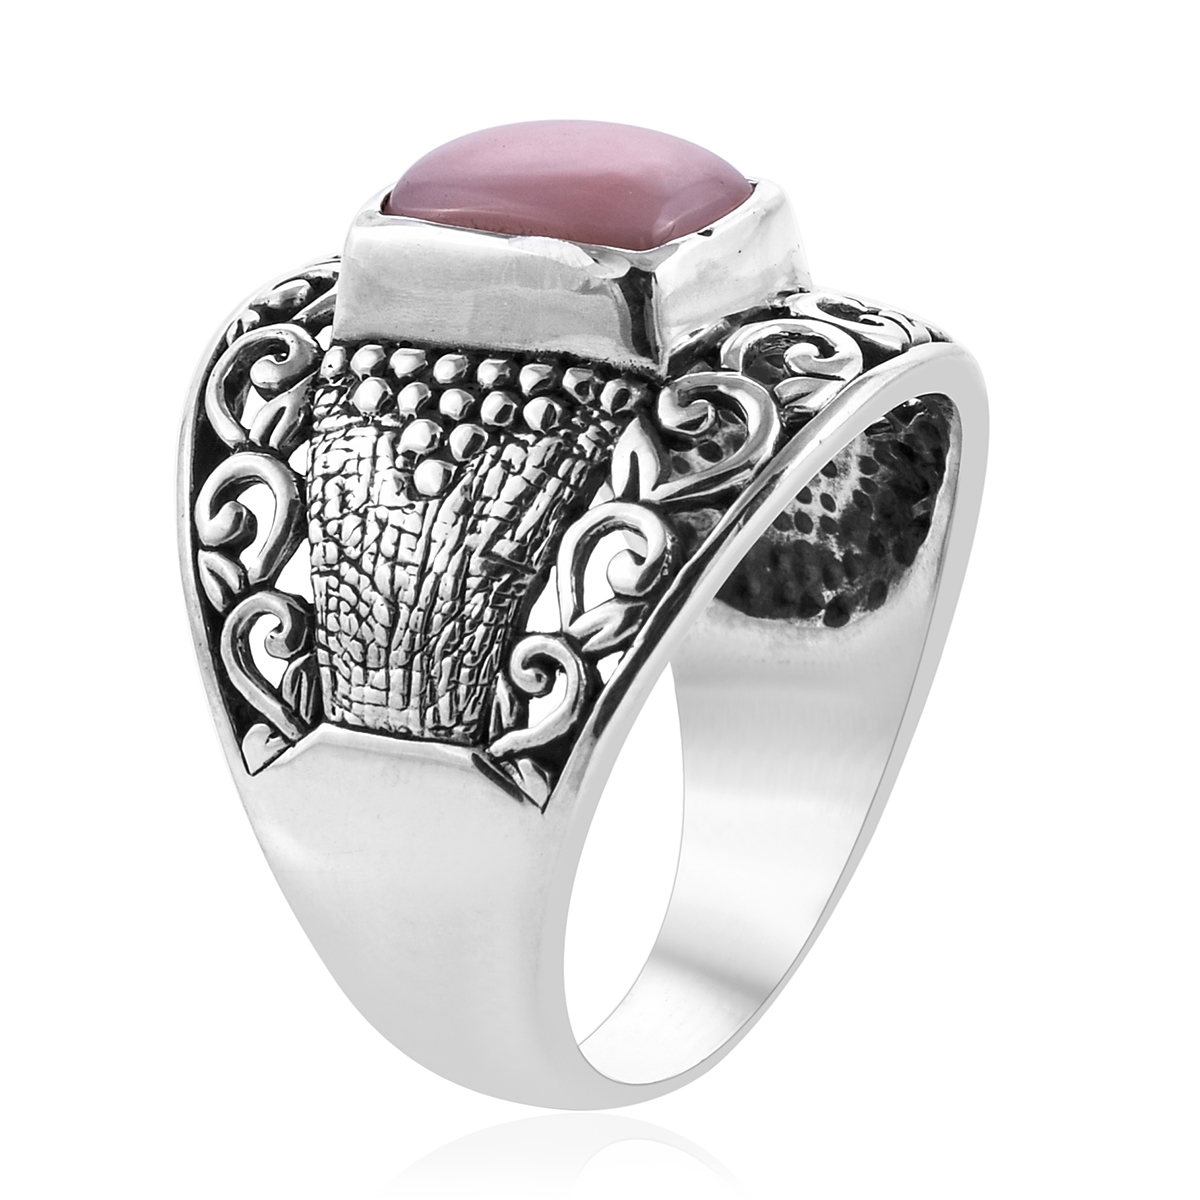 Bali Legacy Peruvian Pink Opal Ring in Sterling Silver (Size 7.0) 2.15 ctw